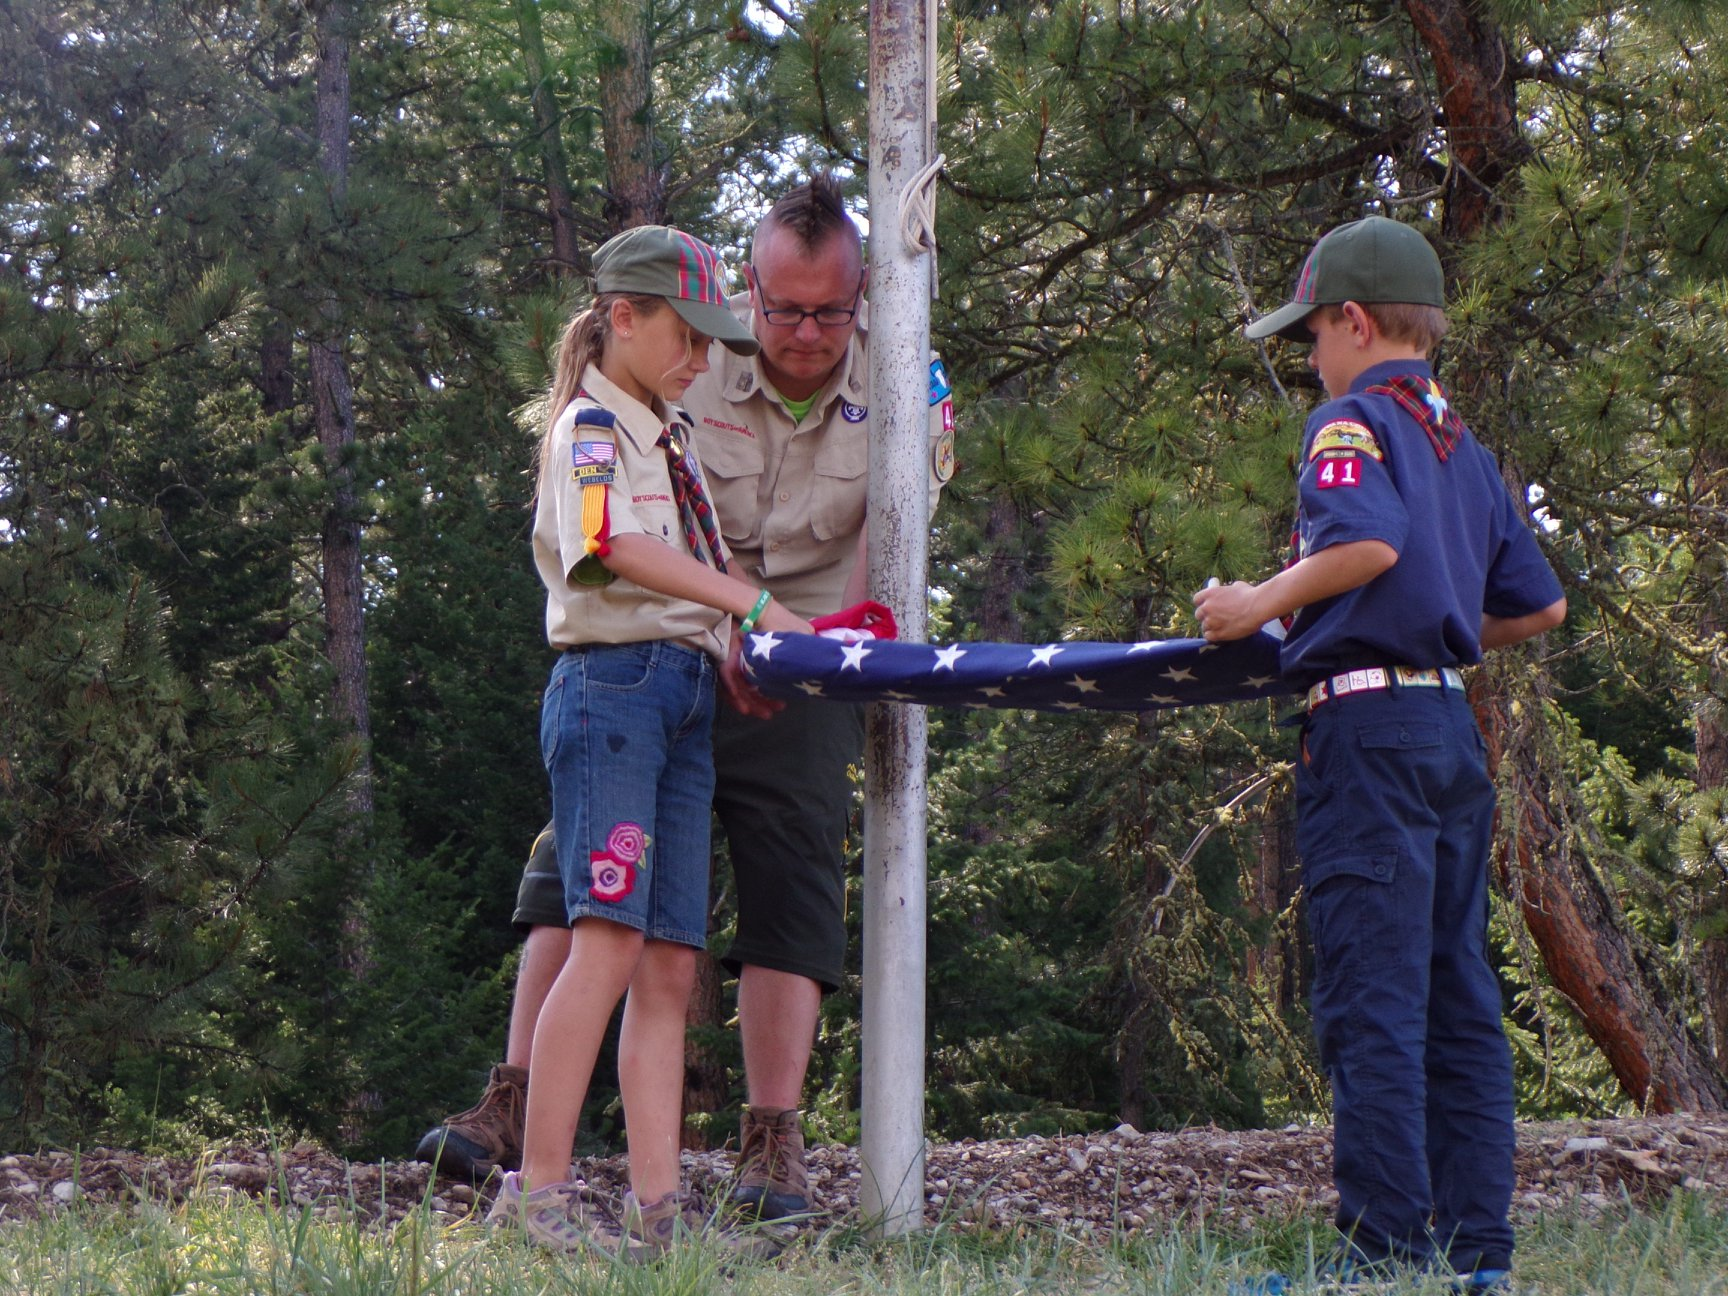 Two Scouts in uniform properly fold an American flag at summer camp.